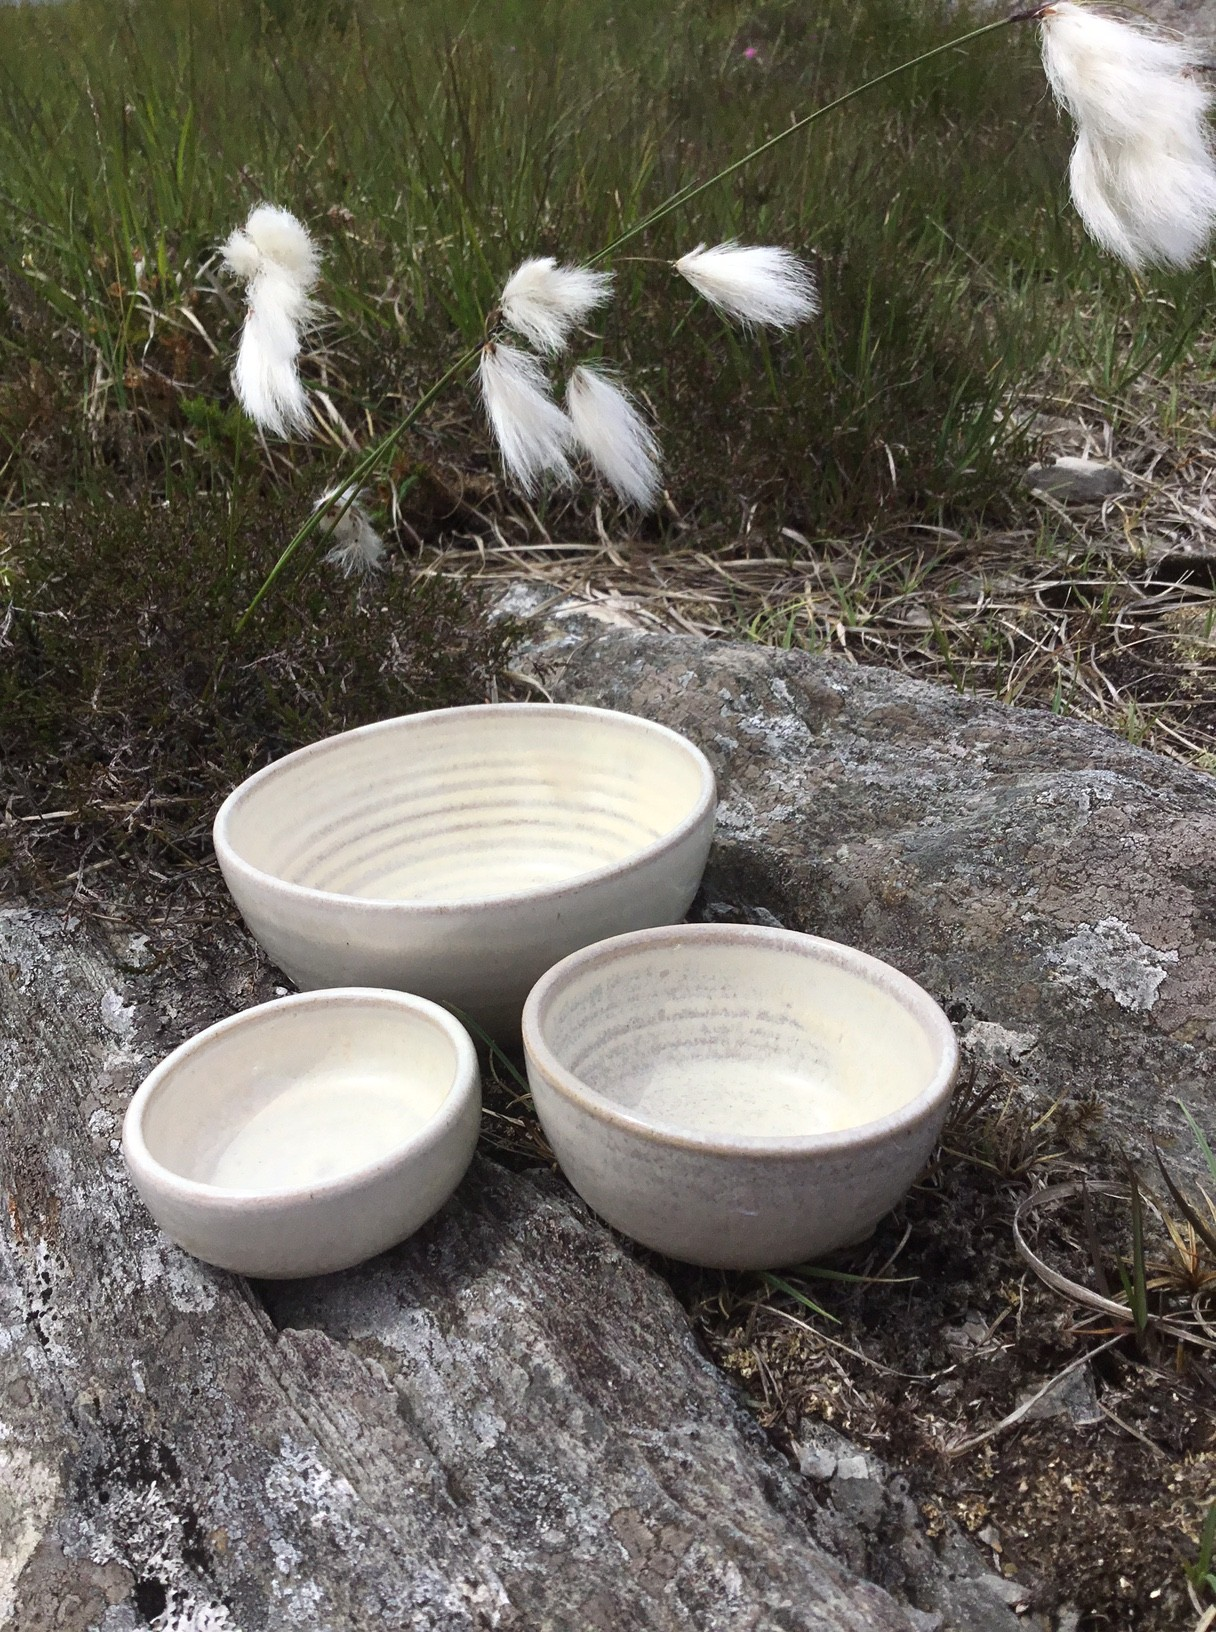 Selection of handmade pottery bowls and dishes made near the Sheeps Head, West Cork